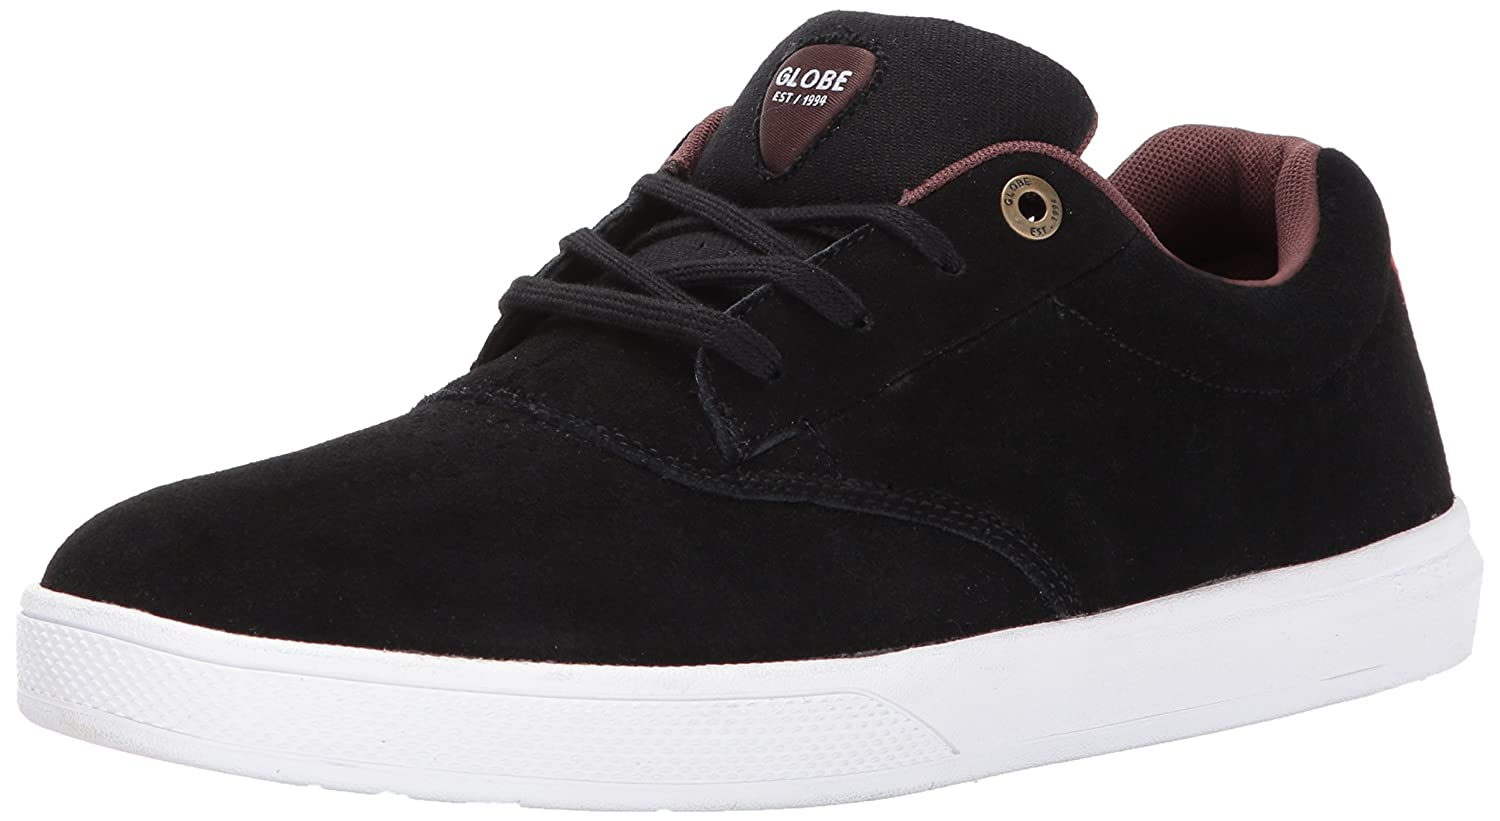 4d8f37e481 Amazon.com  Globe Men s the Eagle SG Skateboarding Shoe  Shoes